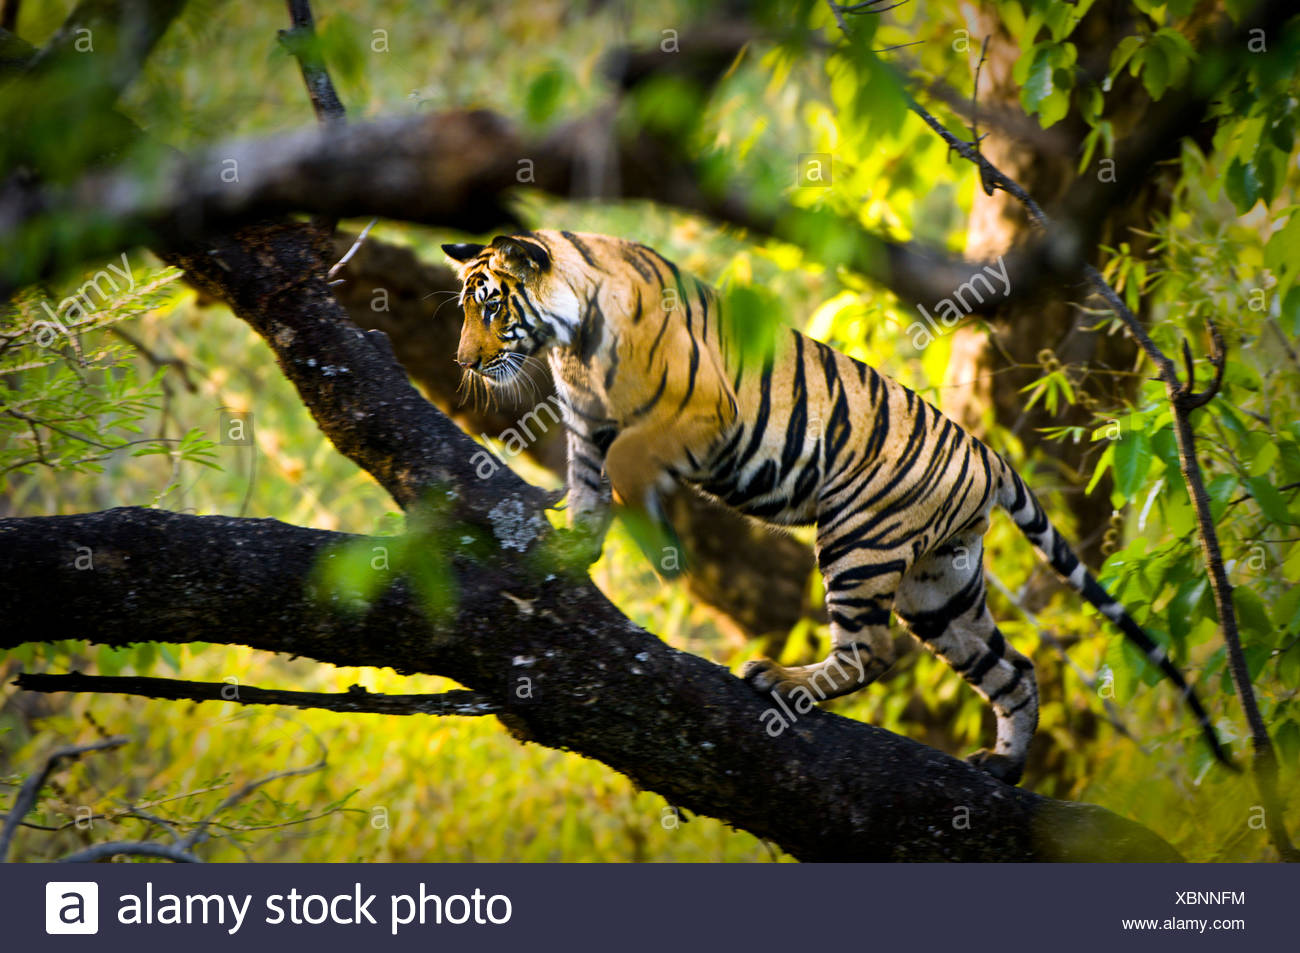 Adolescent tigre du Bengale (environ 15 mois) l'ascension d'une arborescence. Bandhavgarh NP, Madhya Pradesh, Inde. Photo Stock